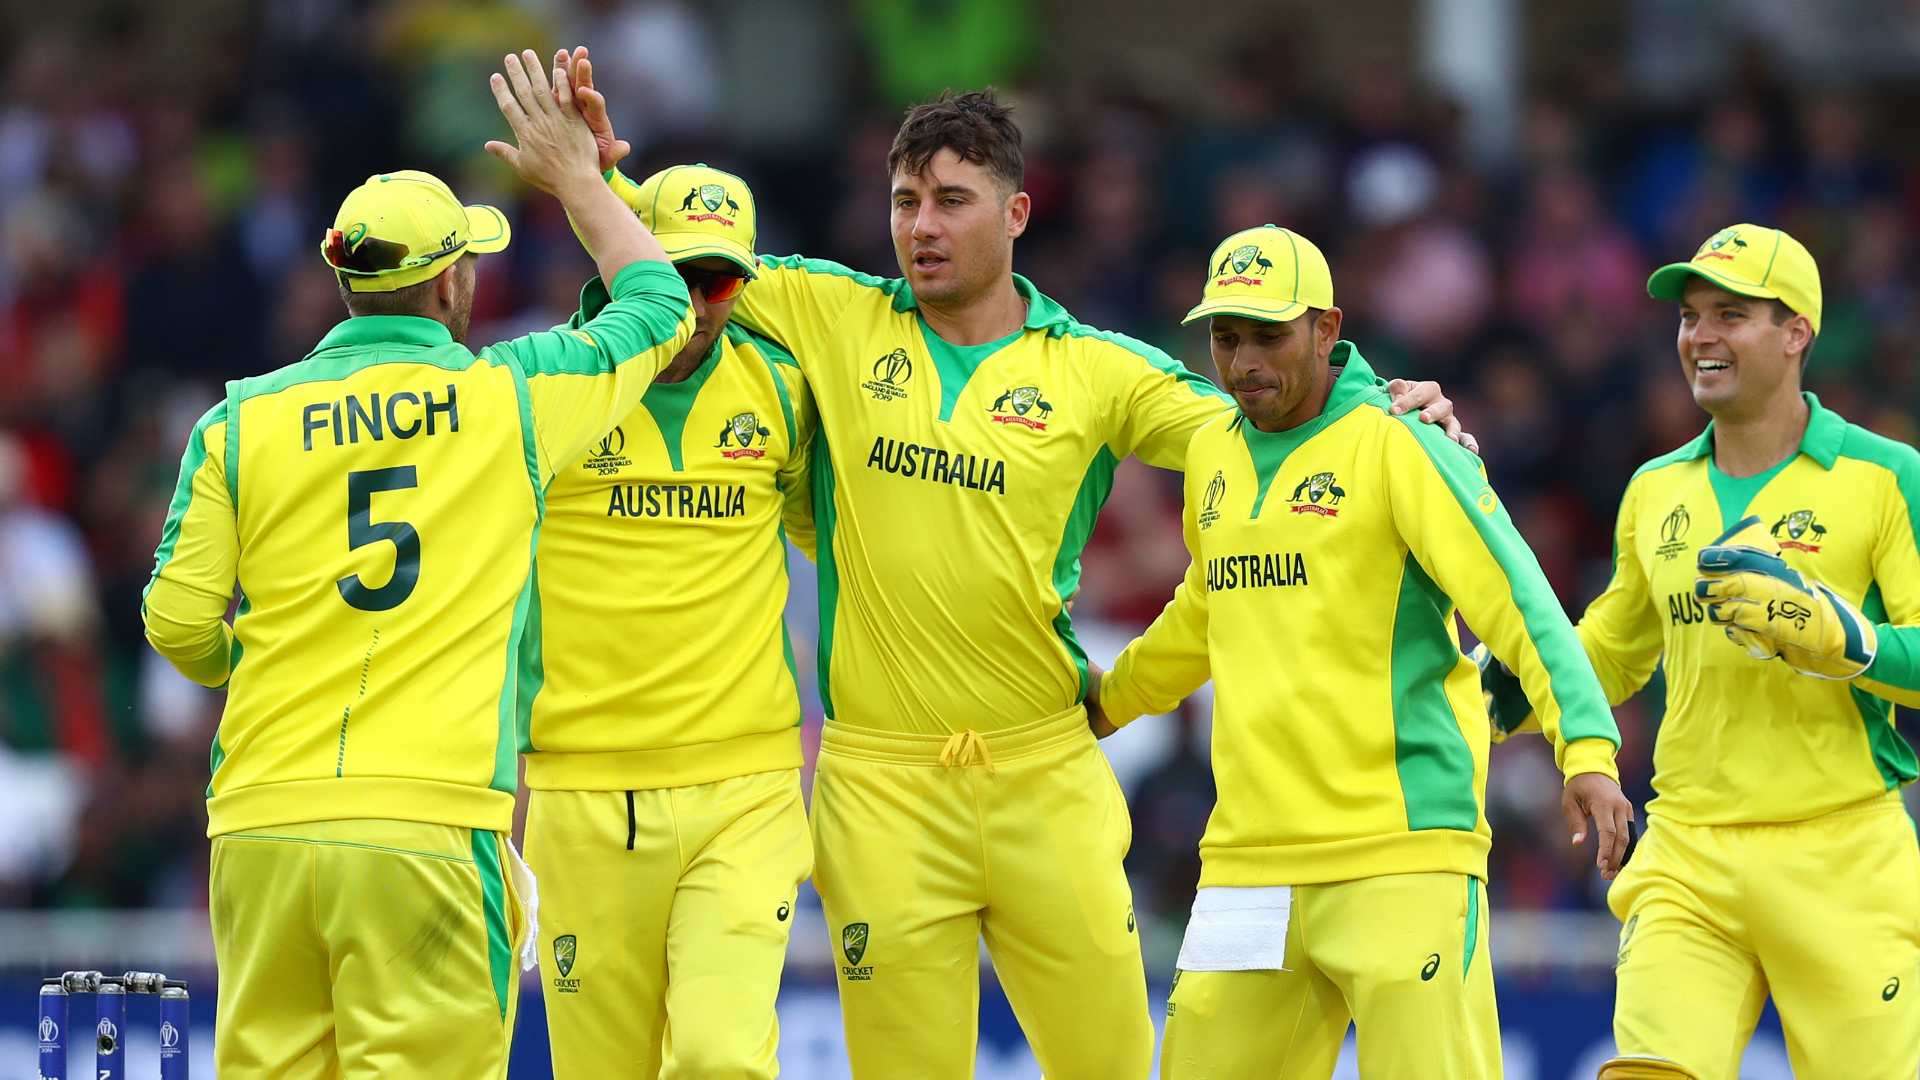 Australia and Bangladesh fought out a high-scoring and hugely entertaining Trent Bridge tussle - and the World Cup holders took the win.